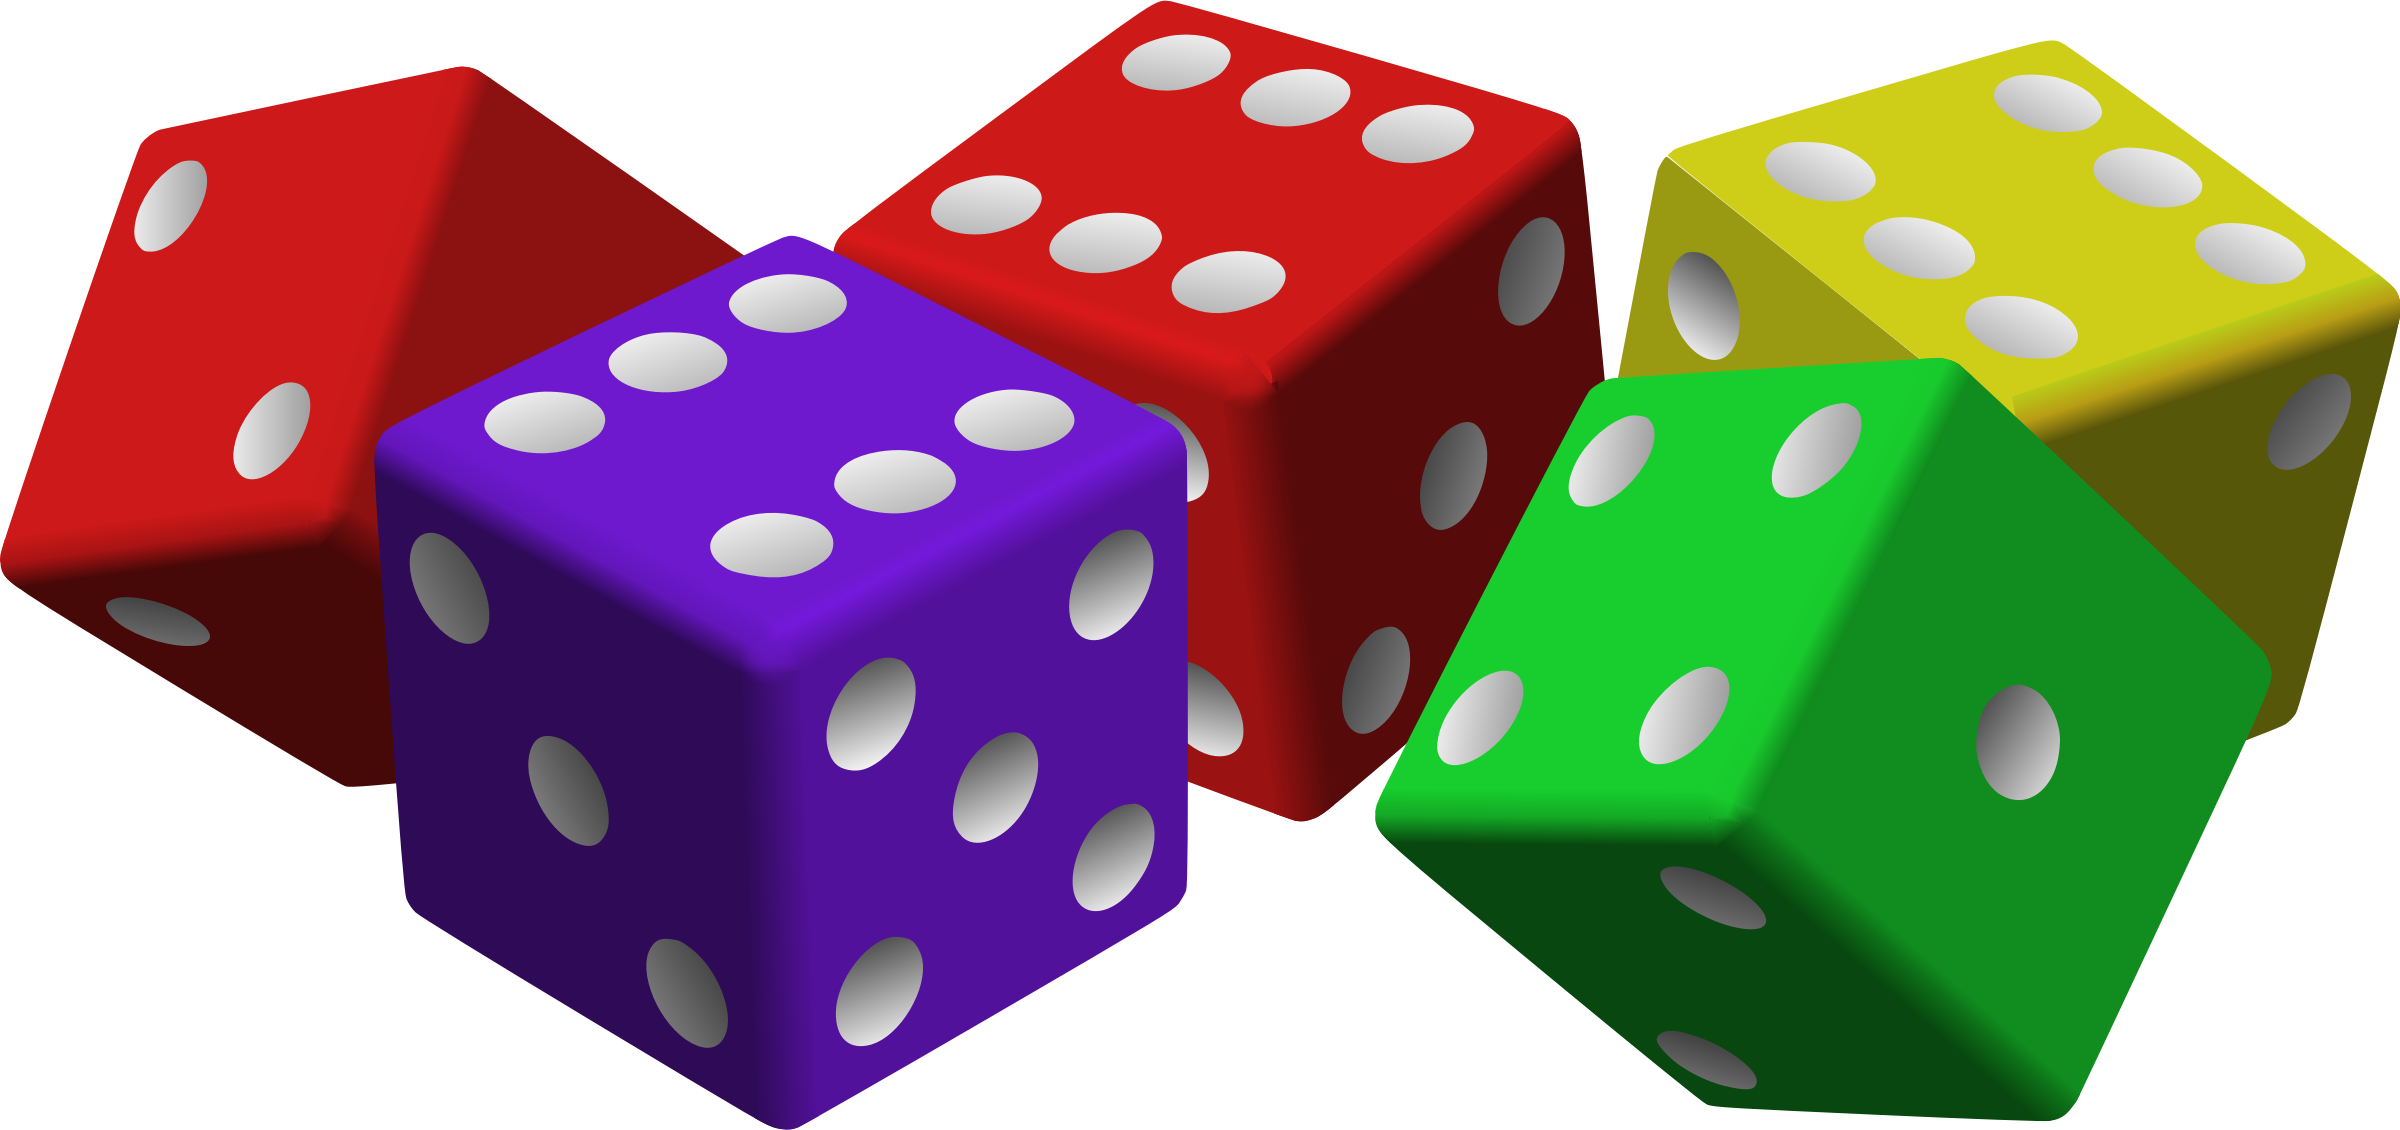 five colored dice by mariotomo